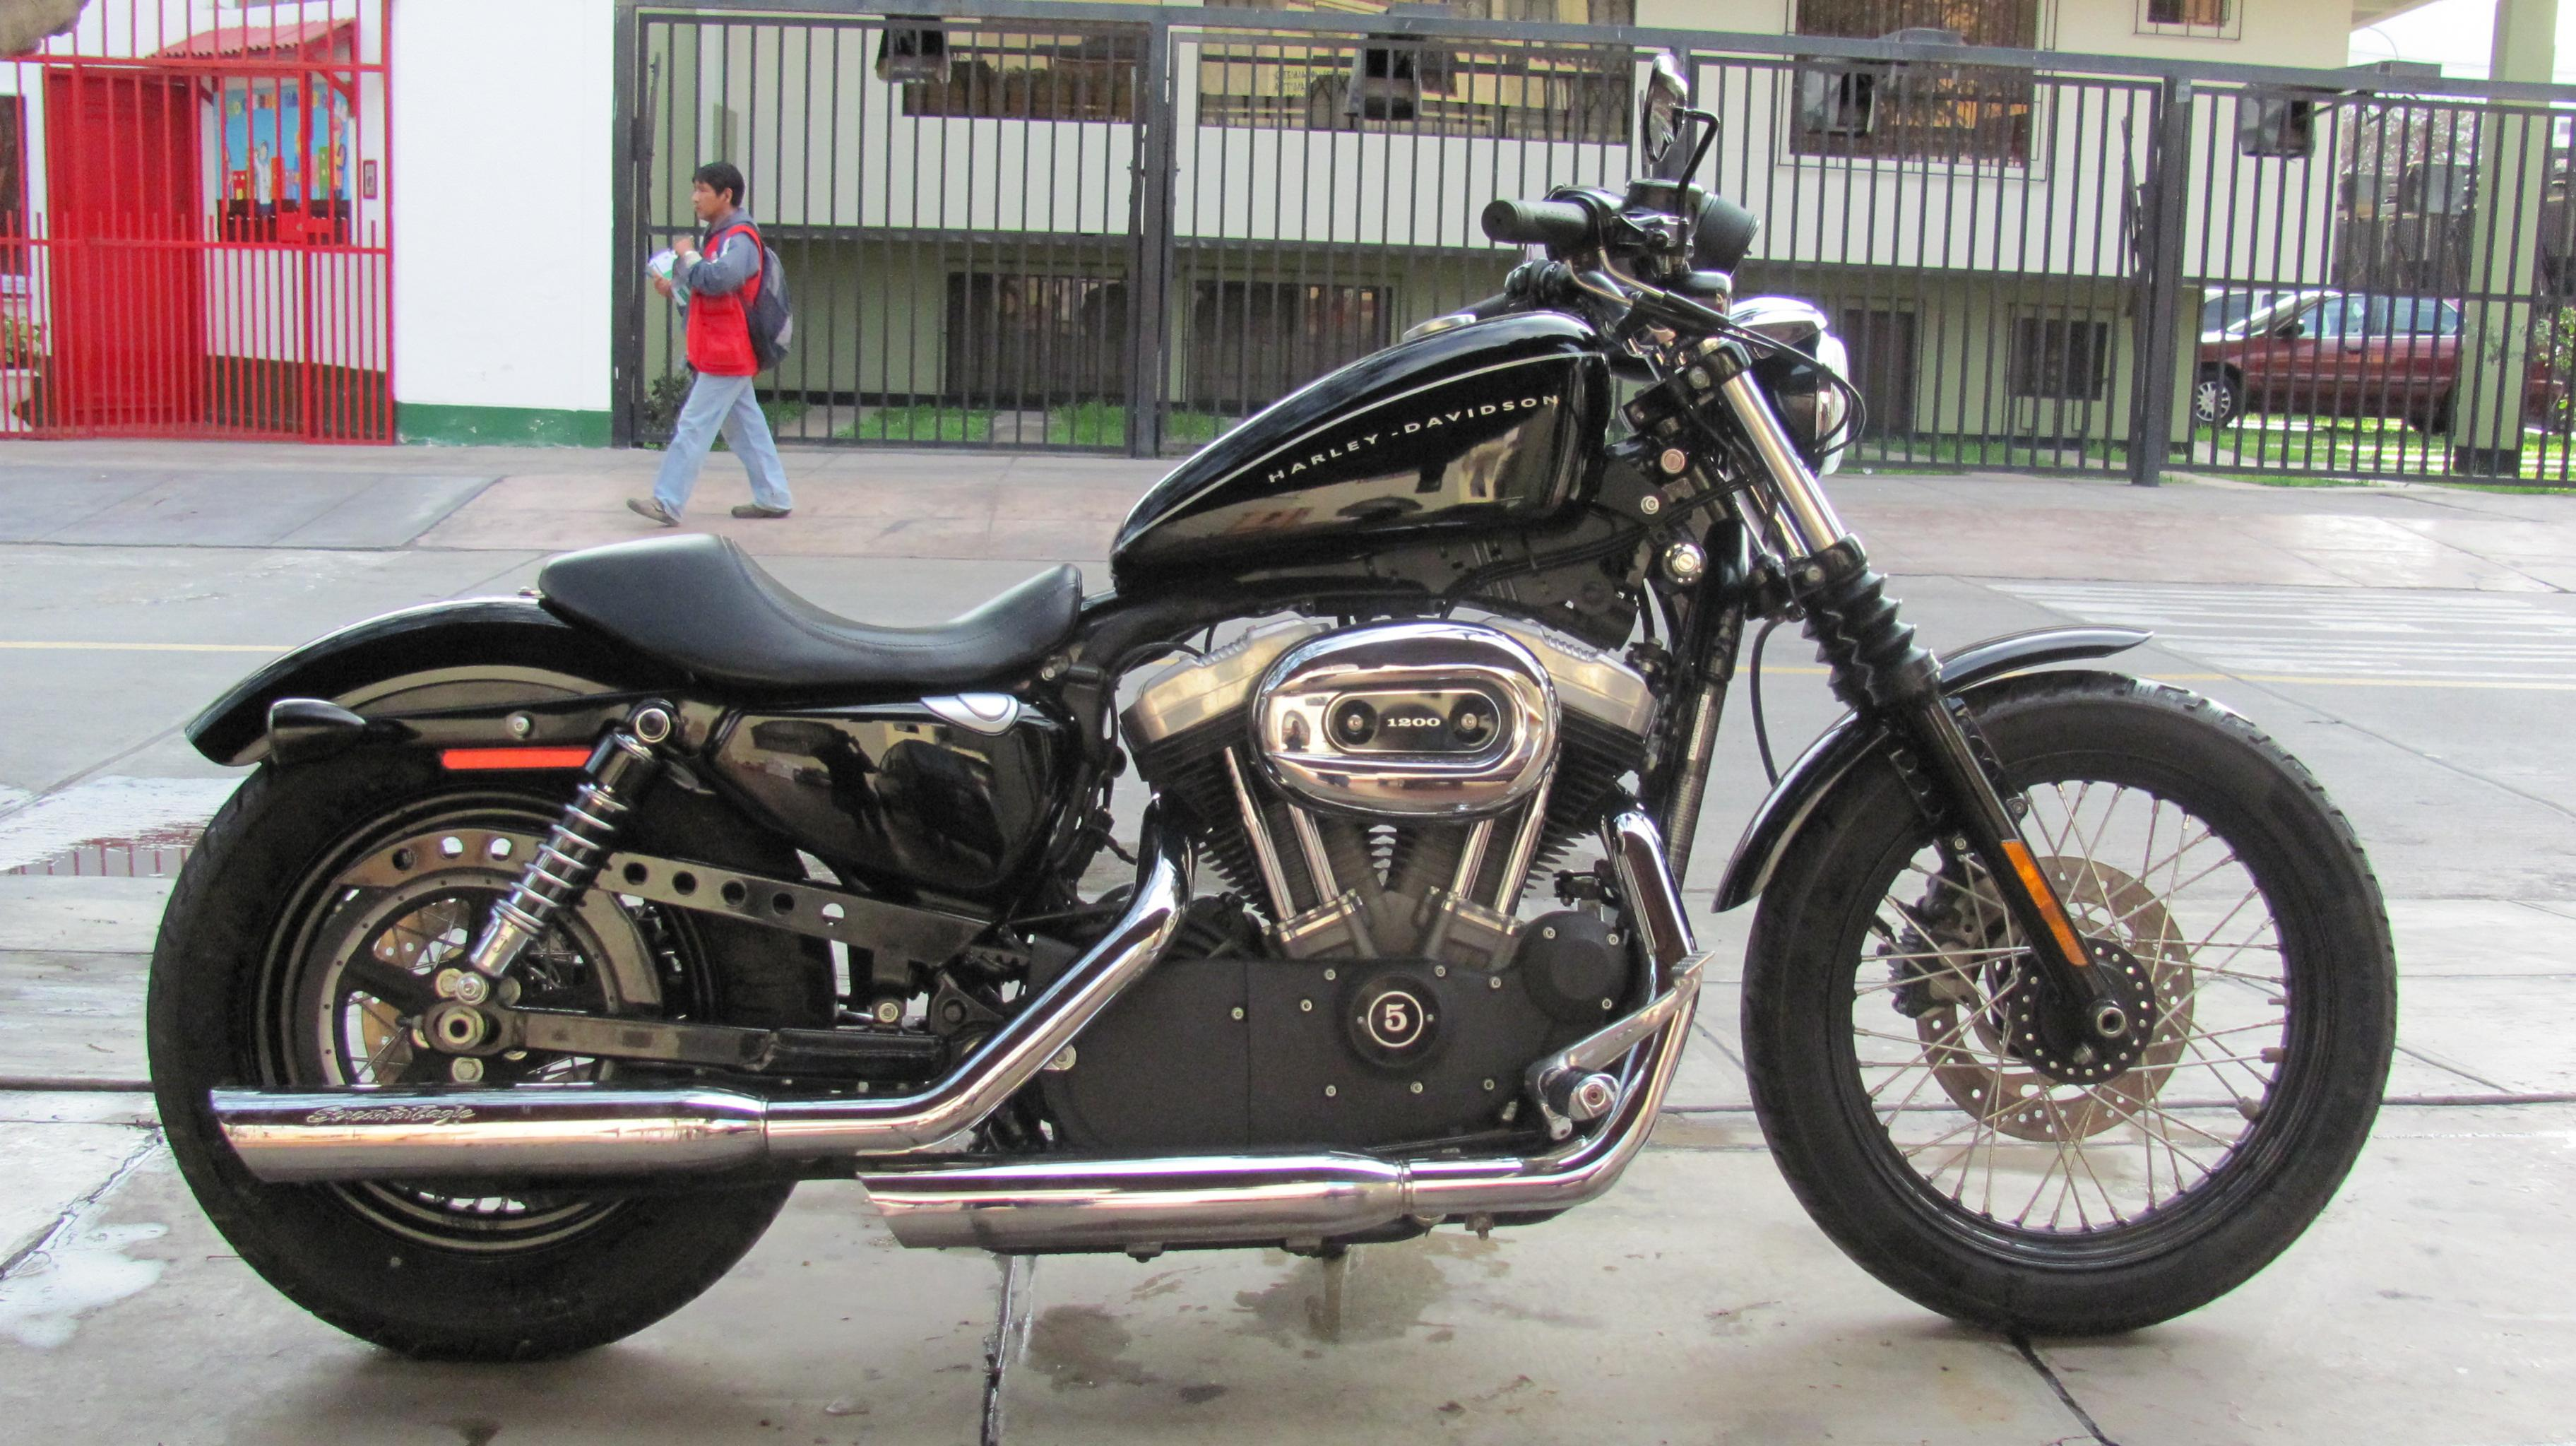 Harley-davidson nightster photo - 1